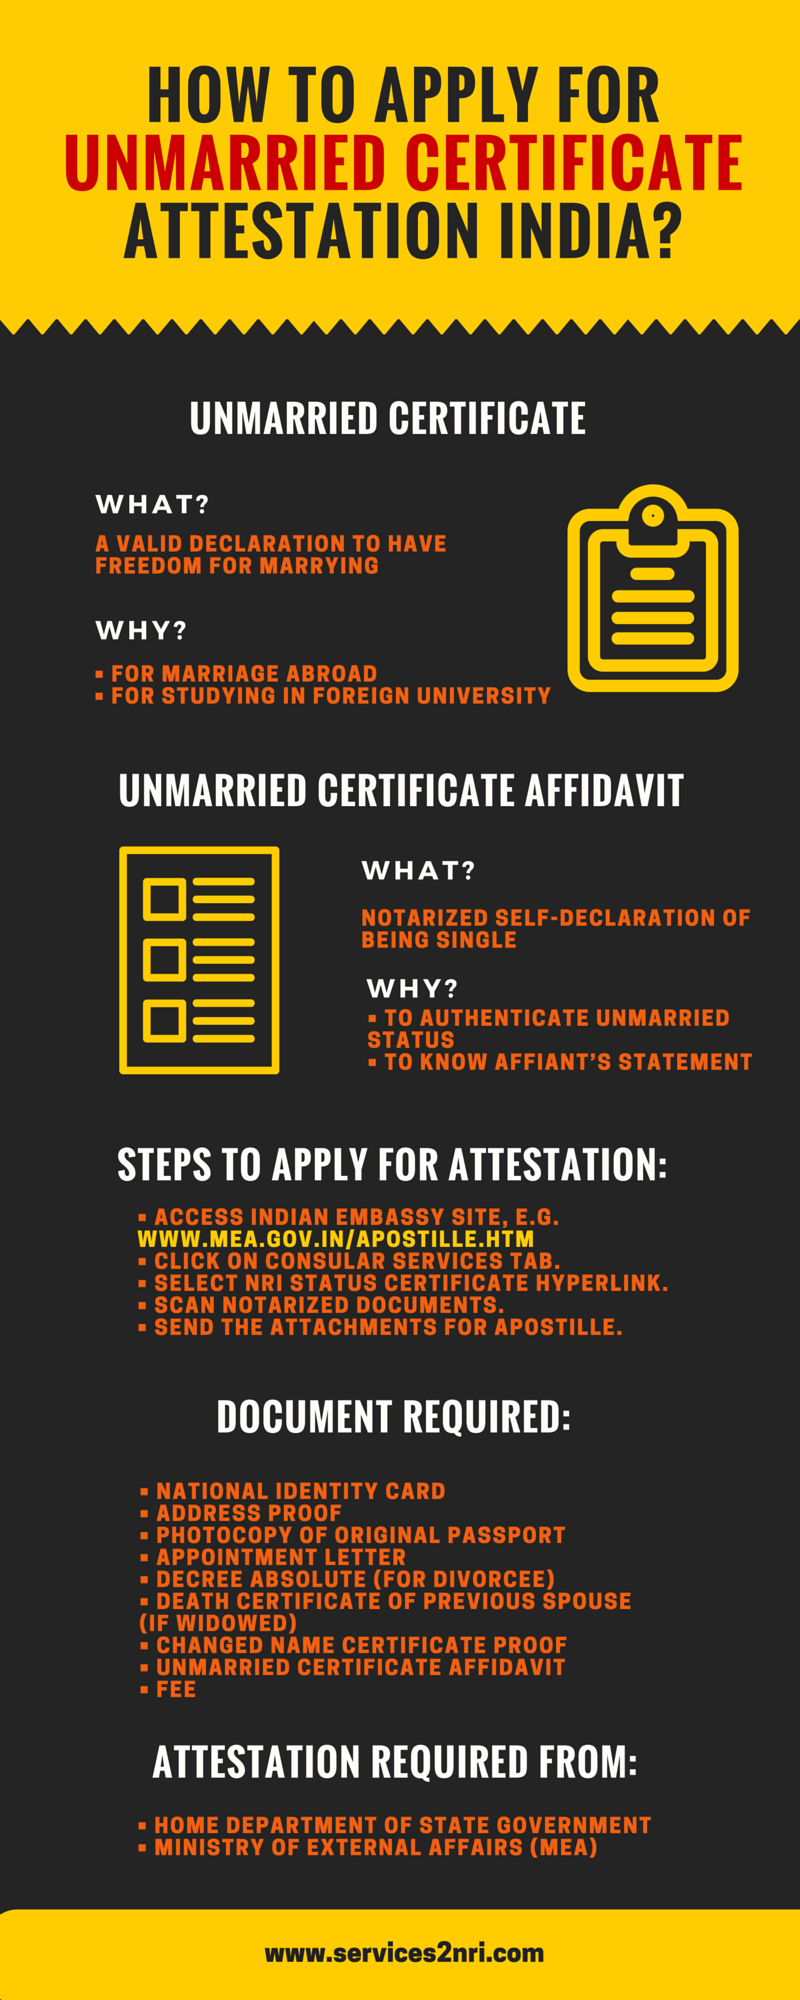 How to Apply for Unmarried Certificate Attestation India-